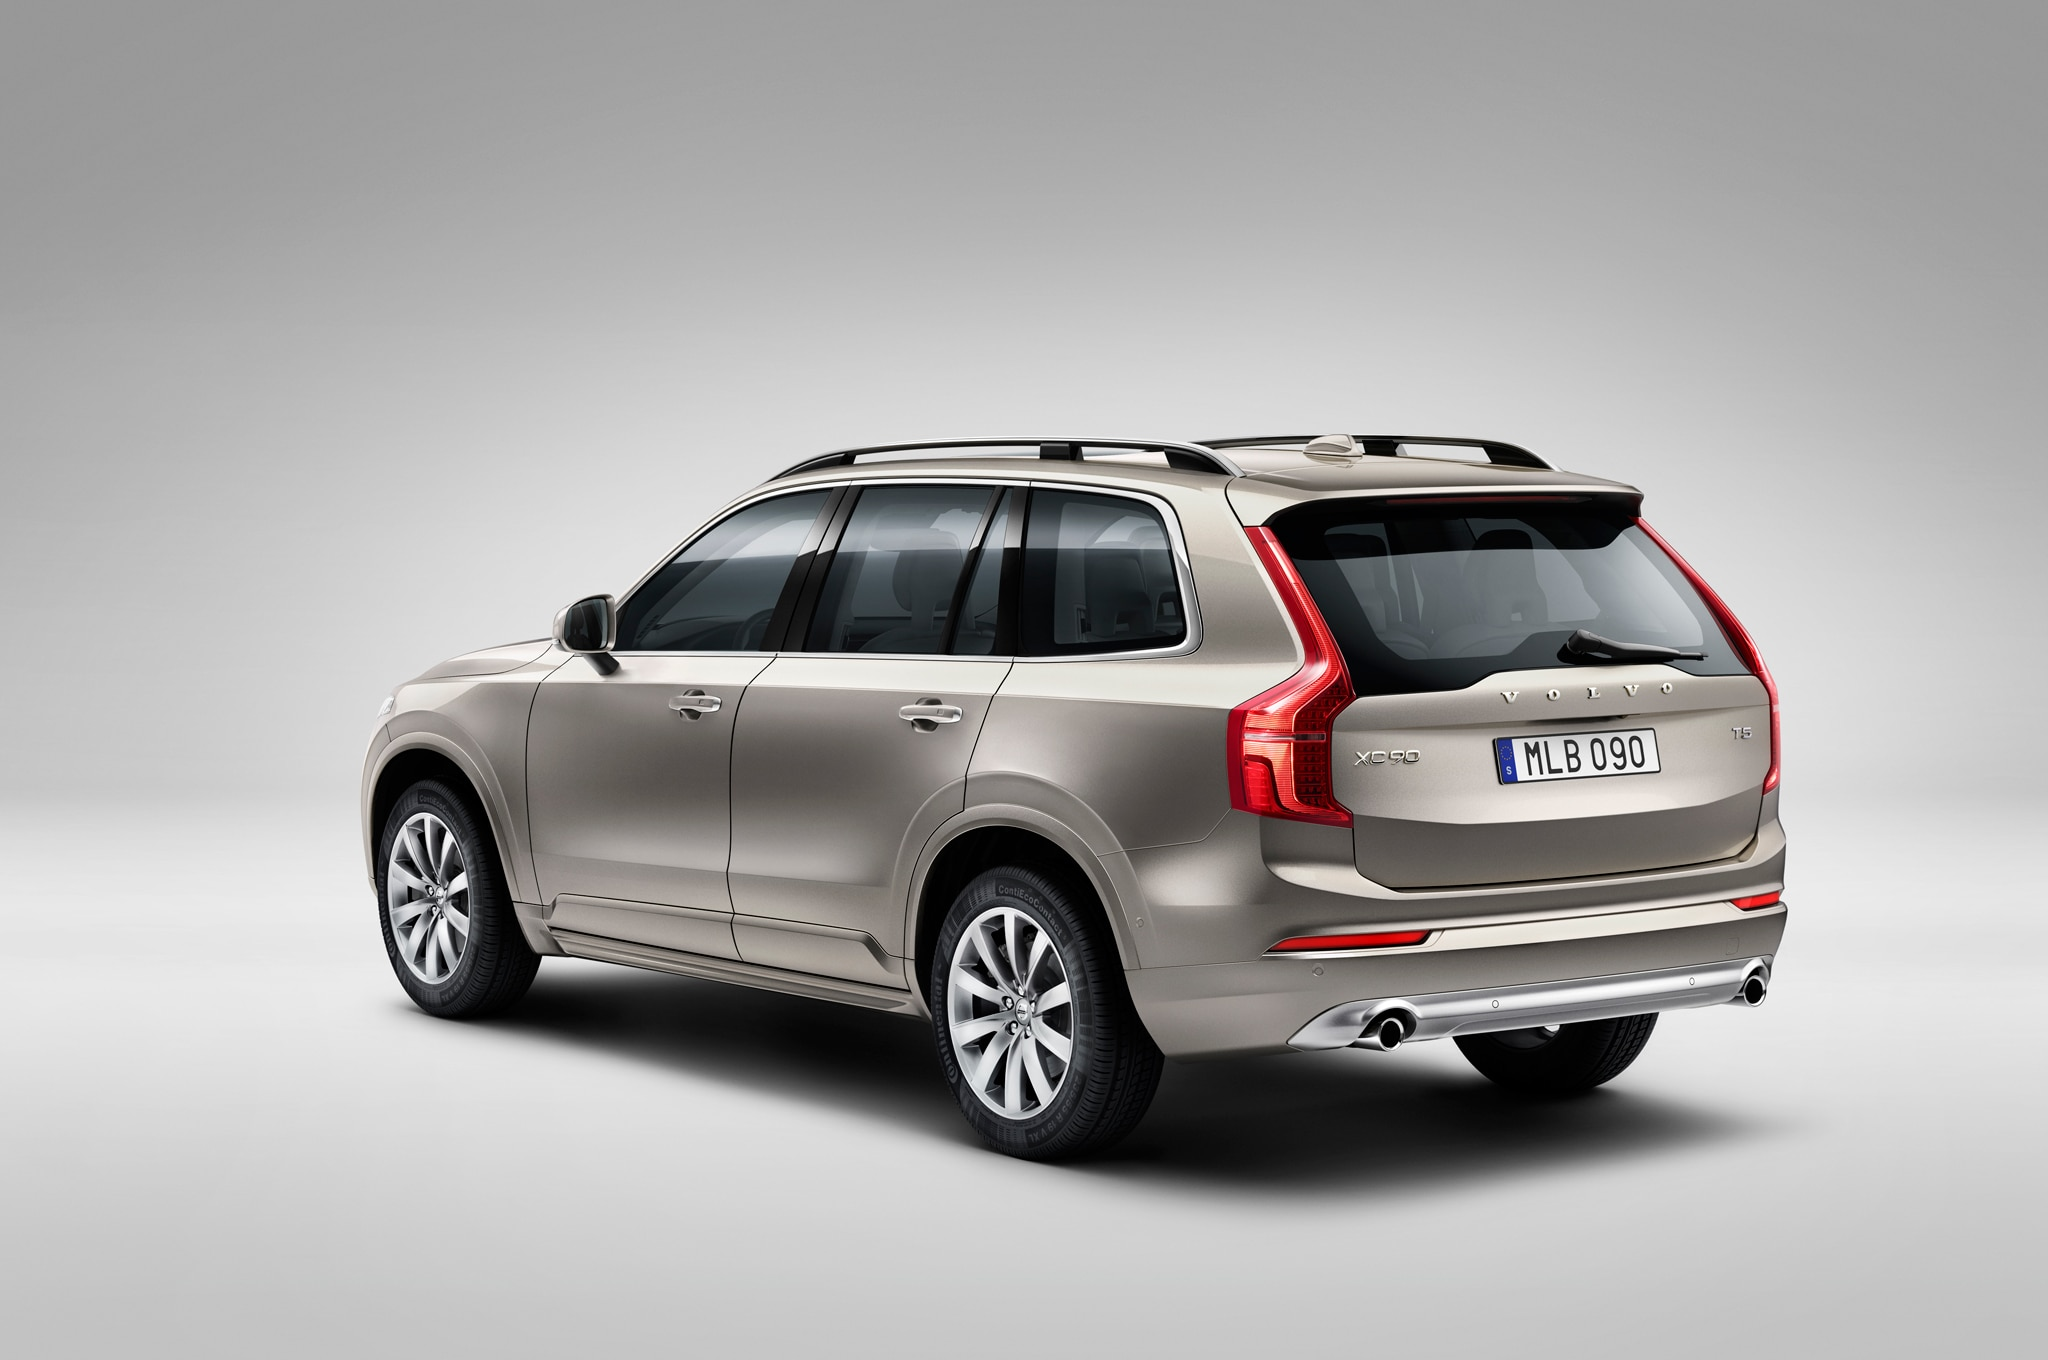 awd inscription volvo youwheel first com price drive